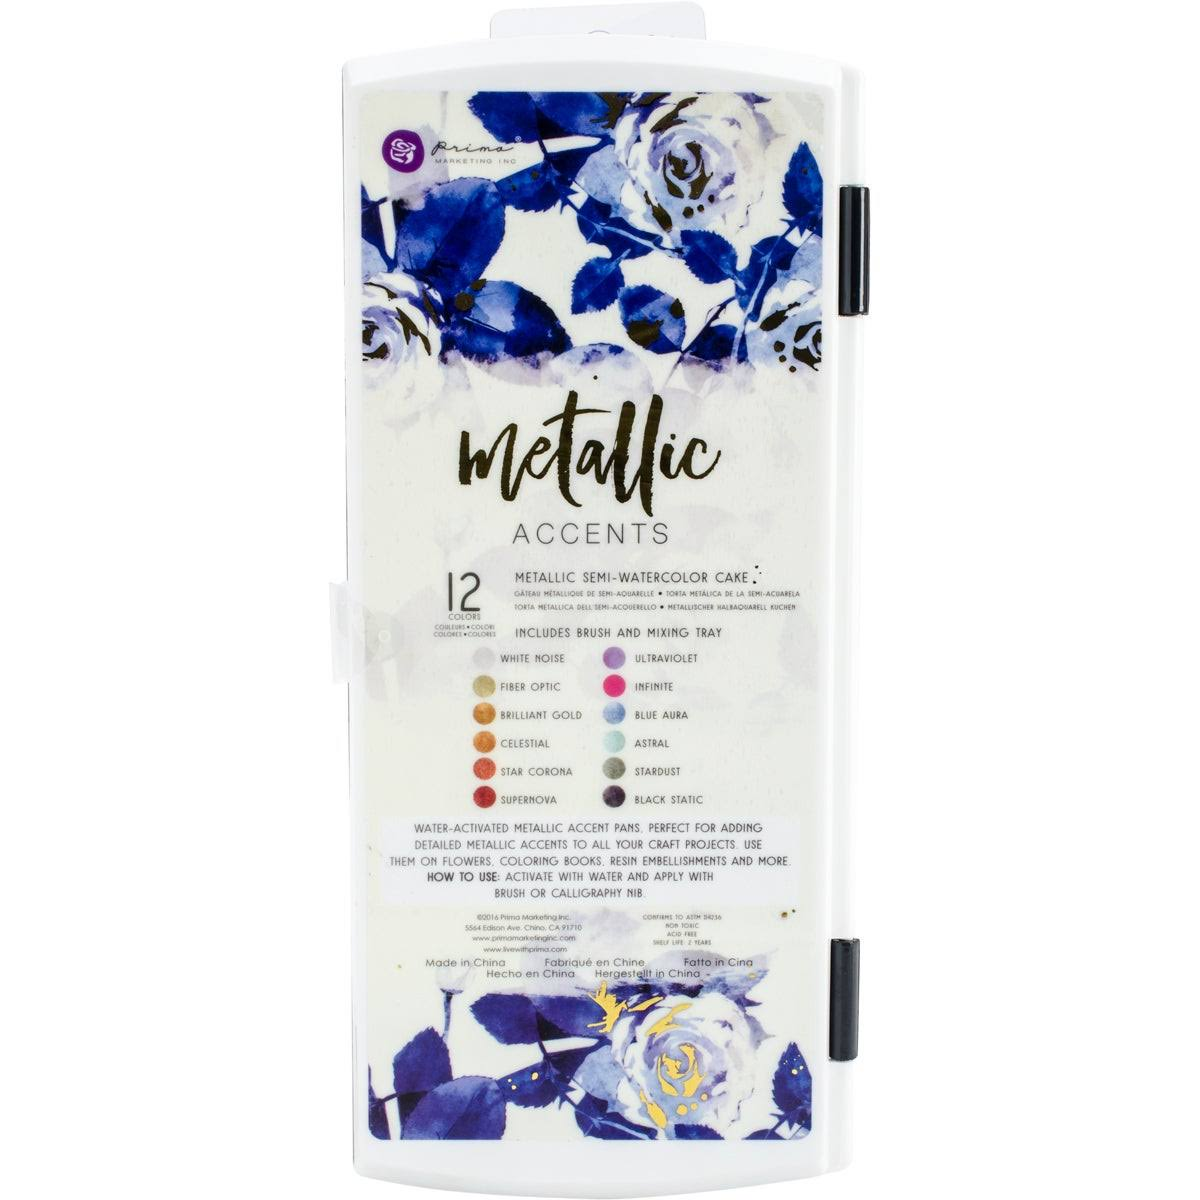 Prima Metallic Accents Semi-watercolor Paint Set - 12 Cake